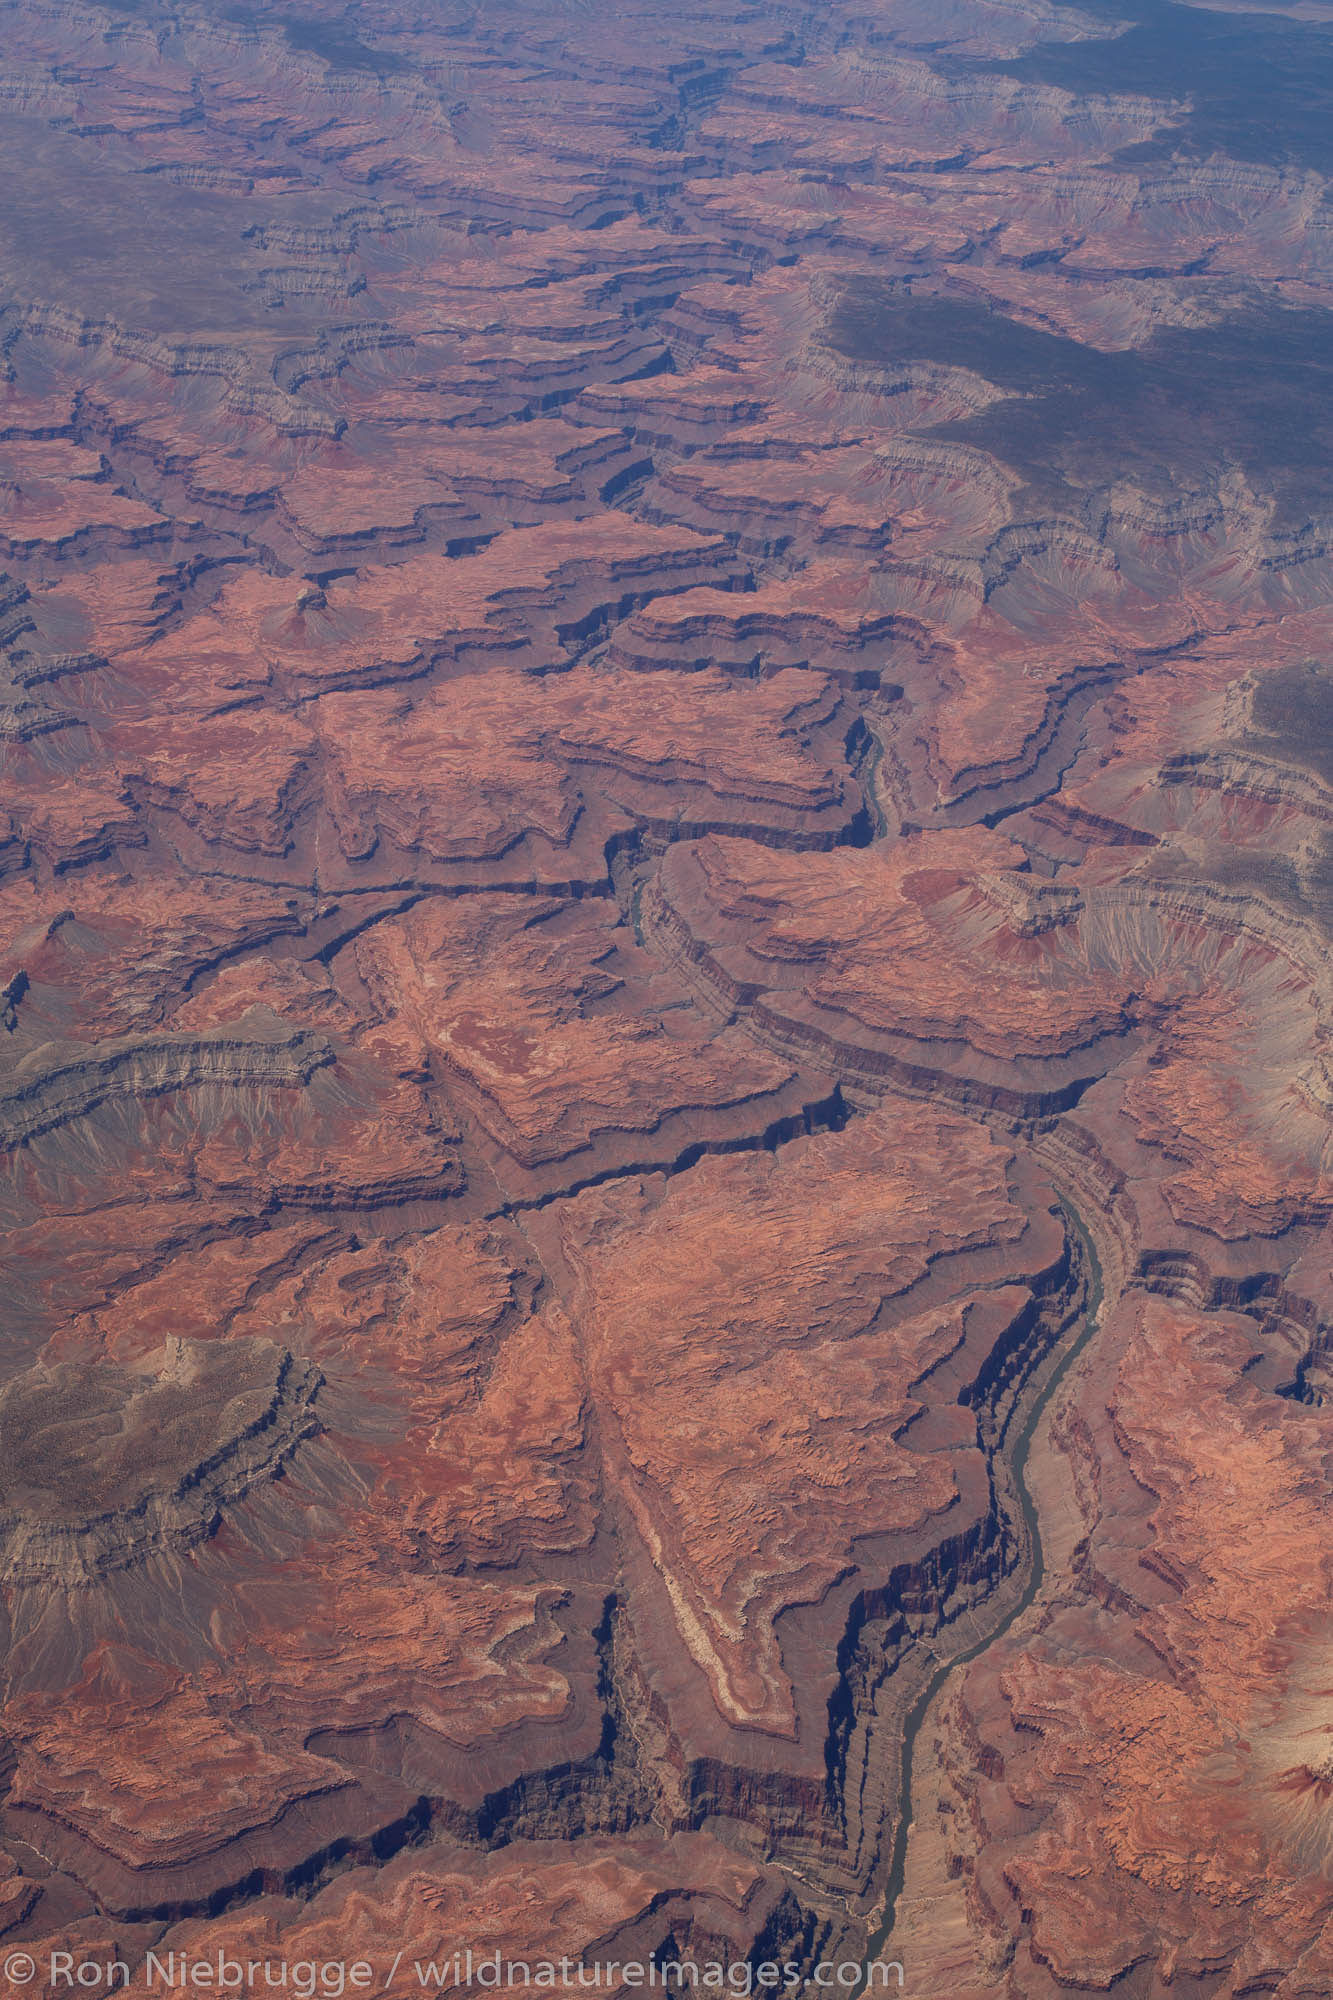 In the air over Grand Canyon National Park, Arizona.